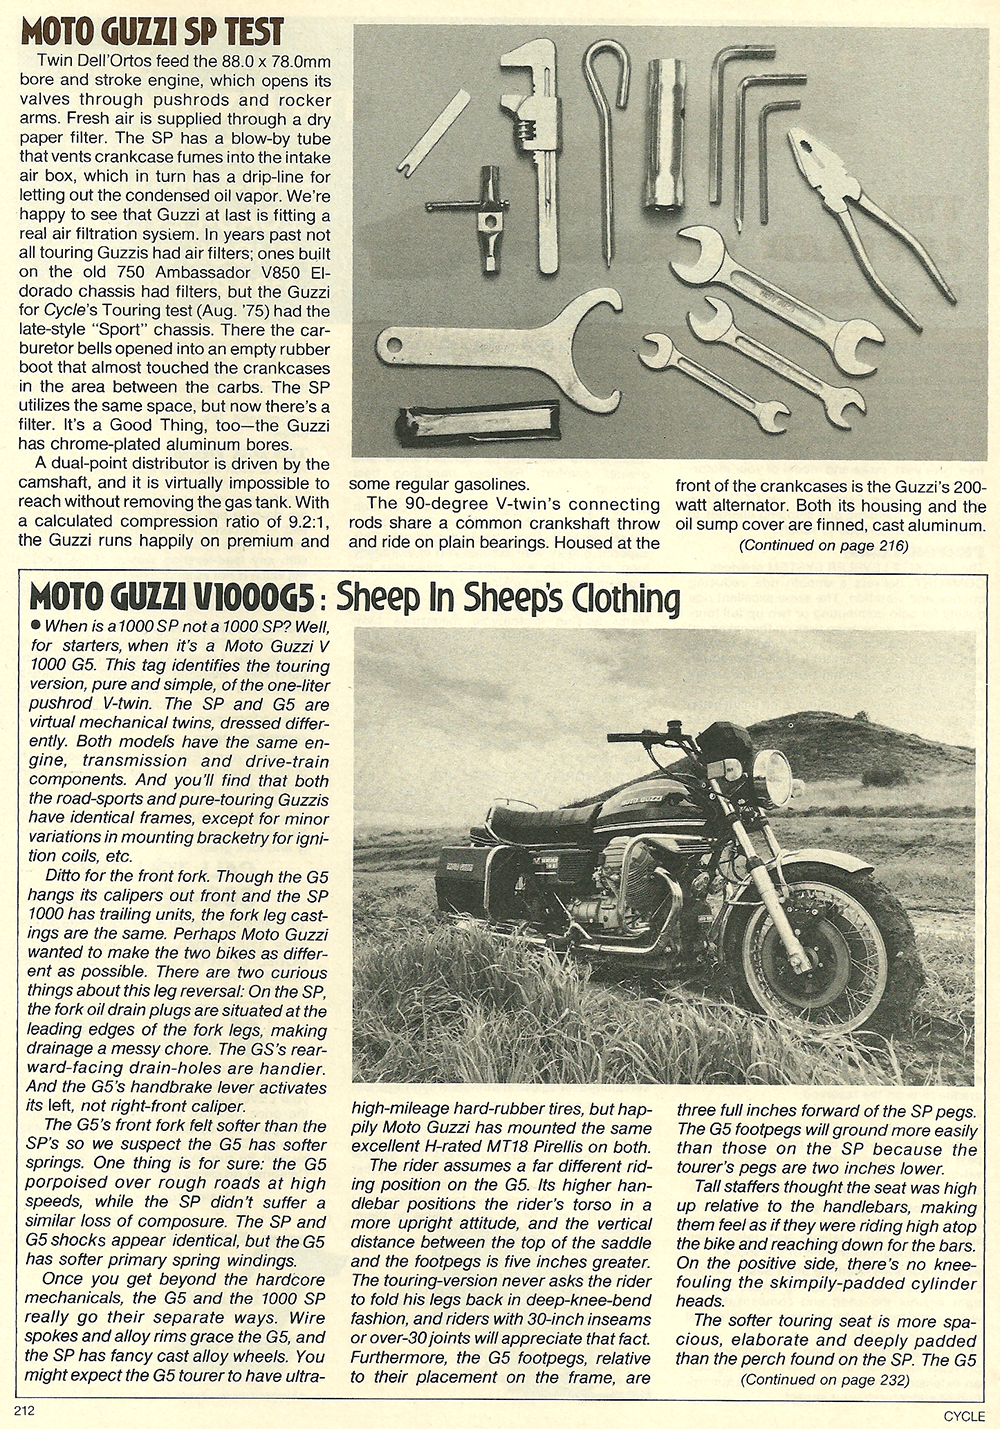 1979 Moto Guzzi 1000 SP road test 09.jpg